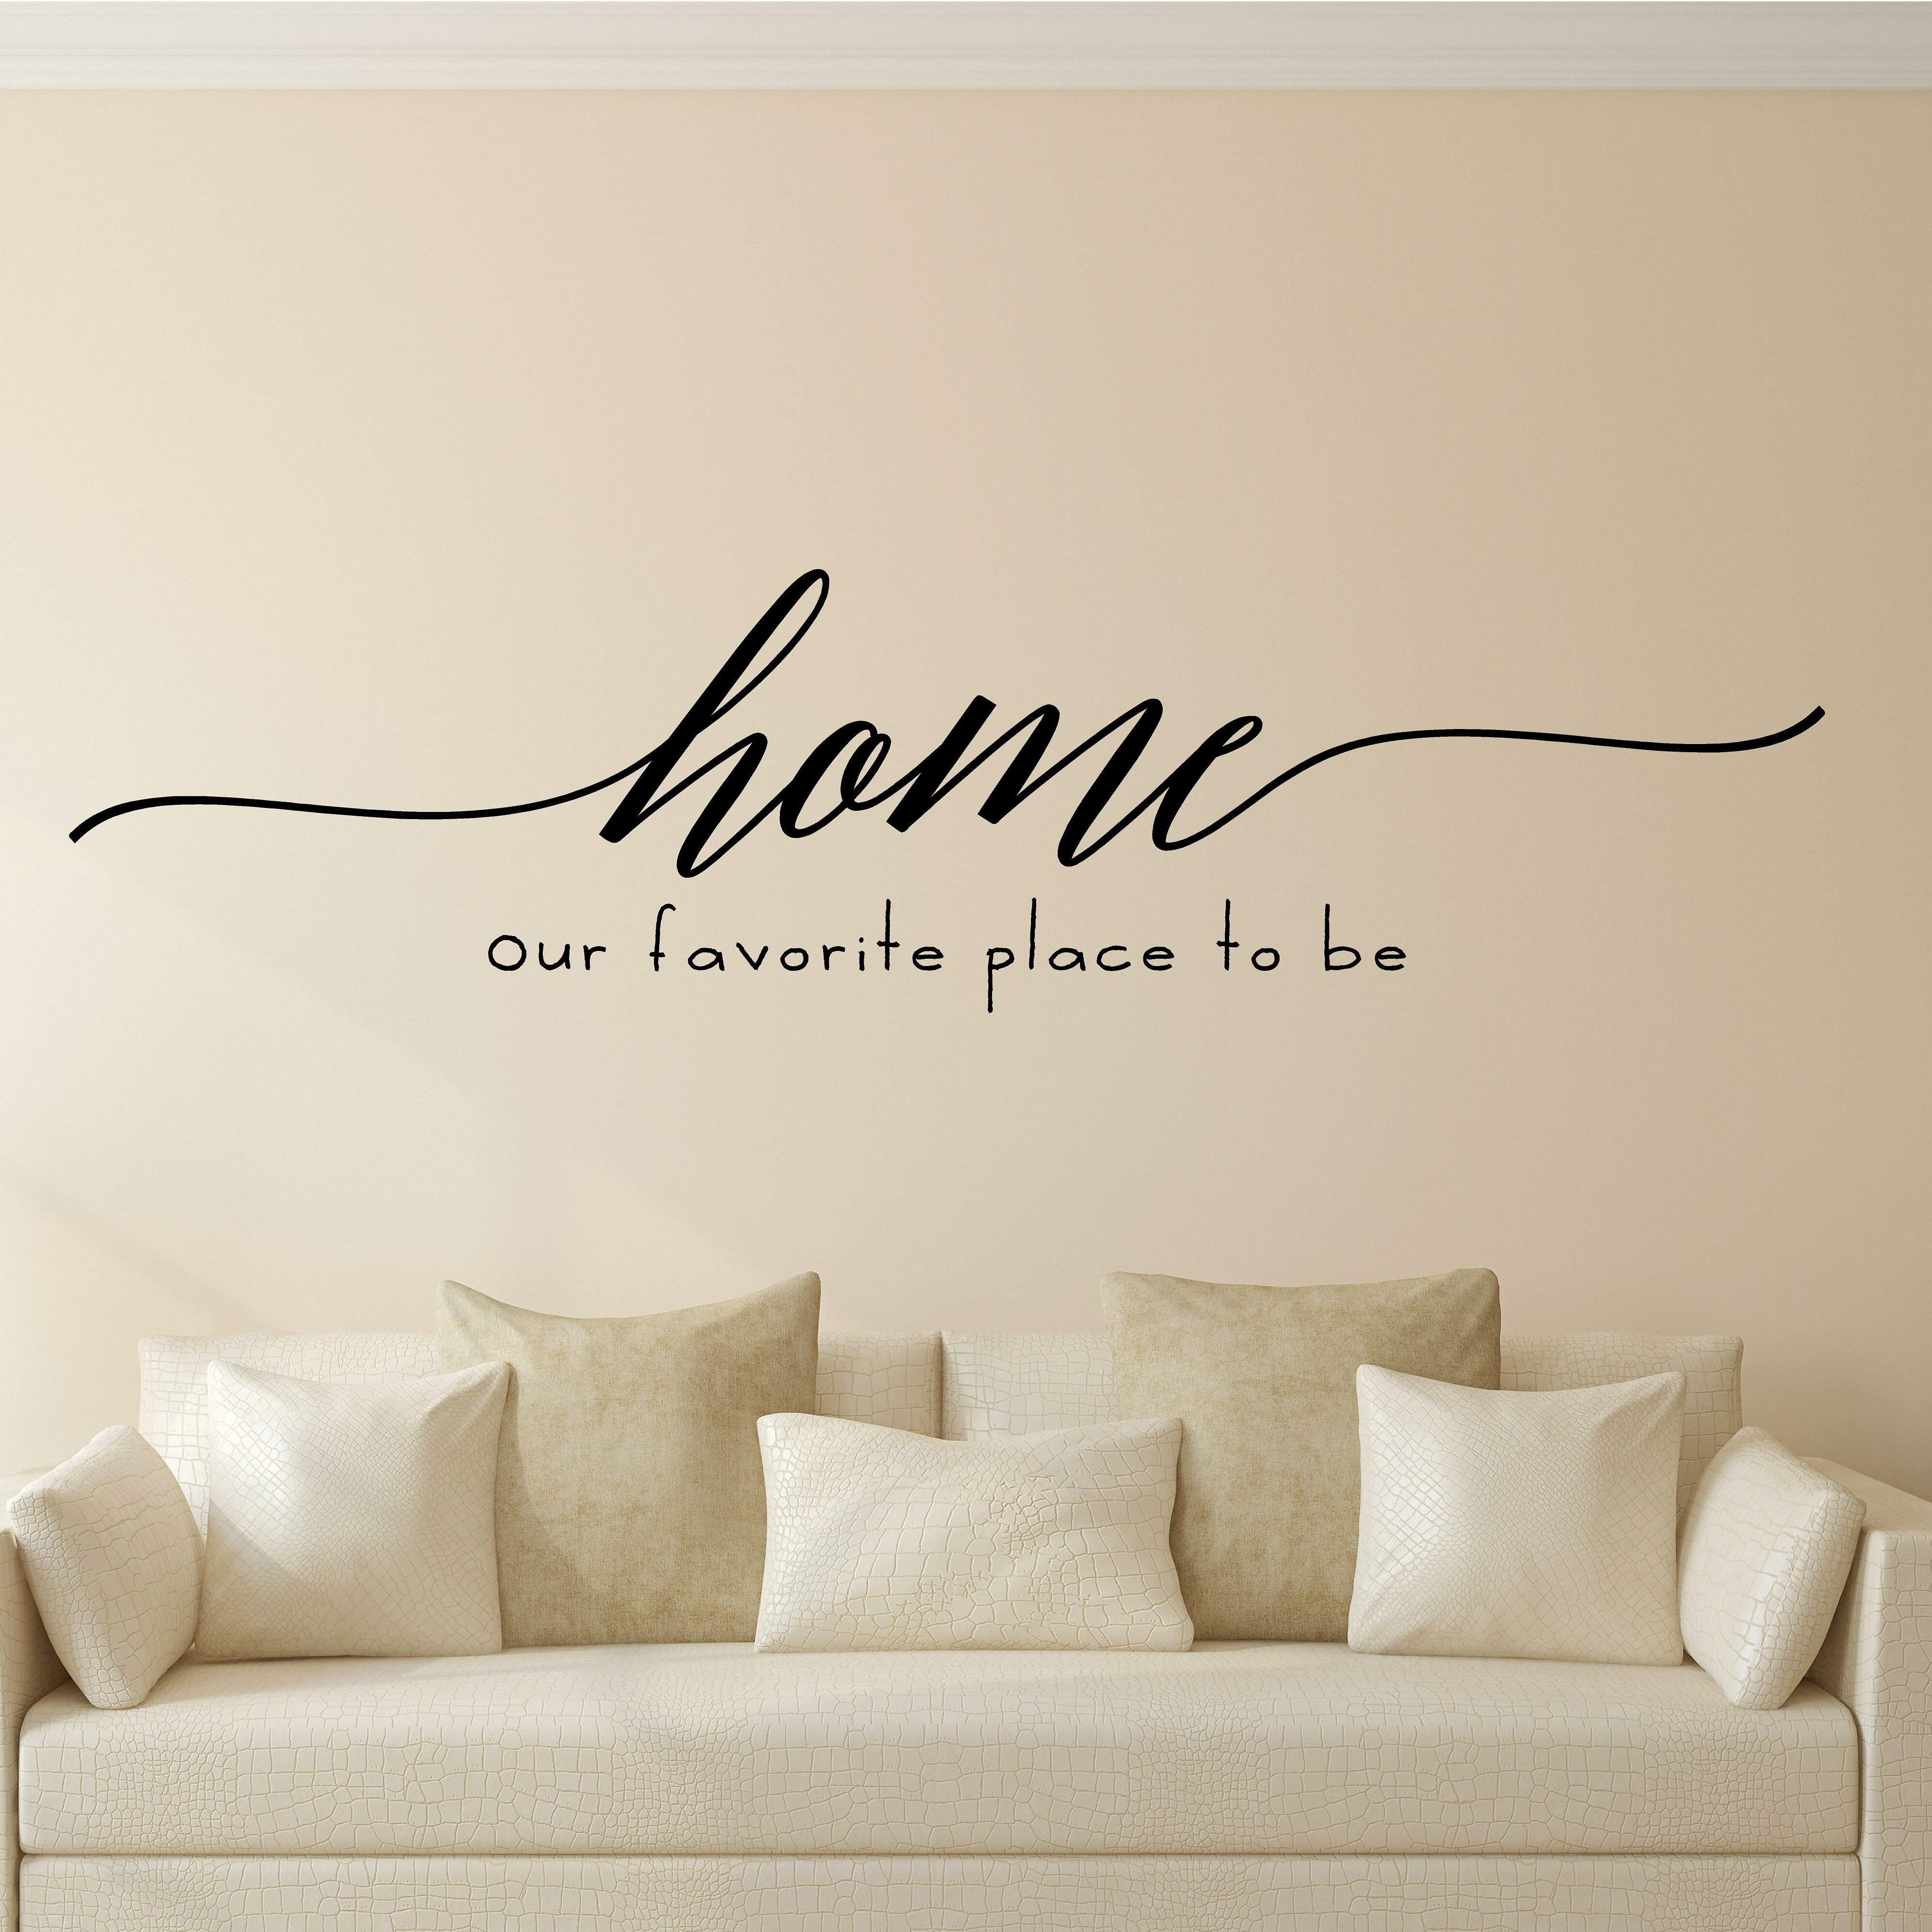 WALL DECAL VINYL WALL QUOTE MAY OUR HOME BE FILLED WITH LAUGHTER FAMILY..